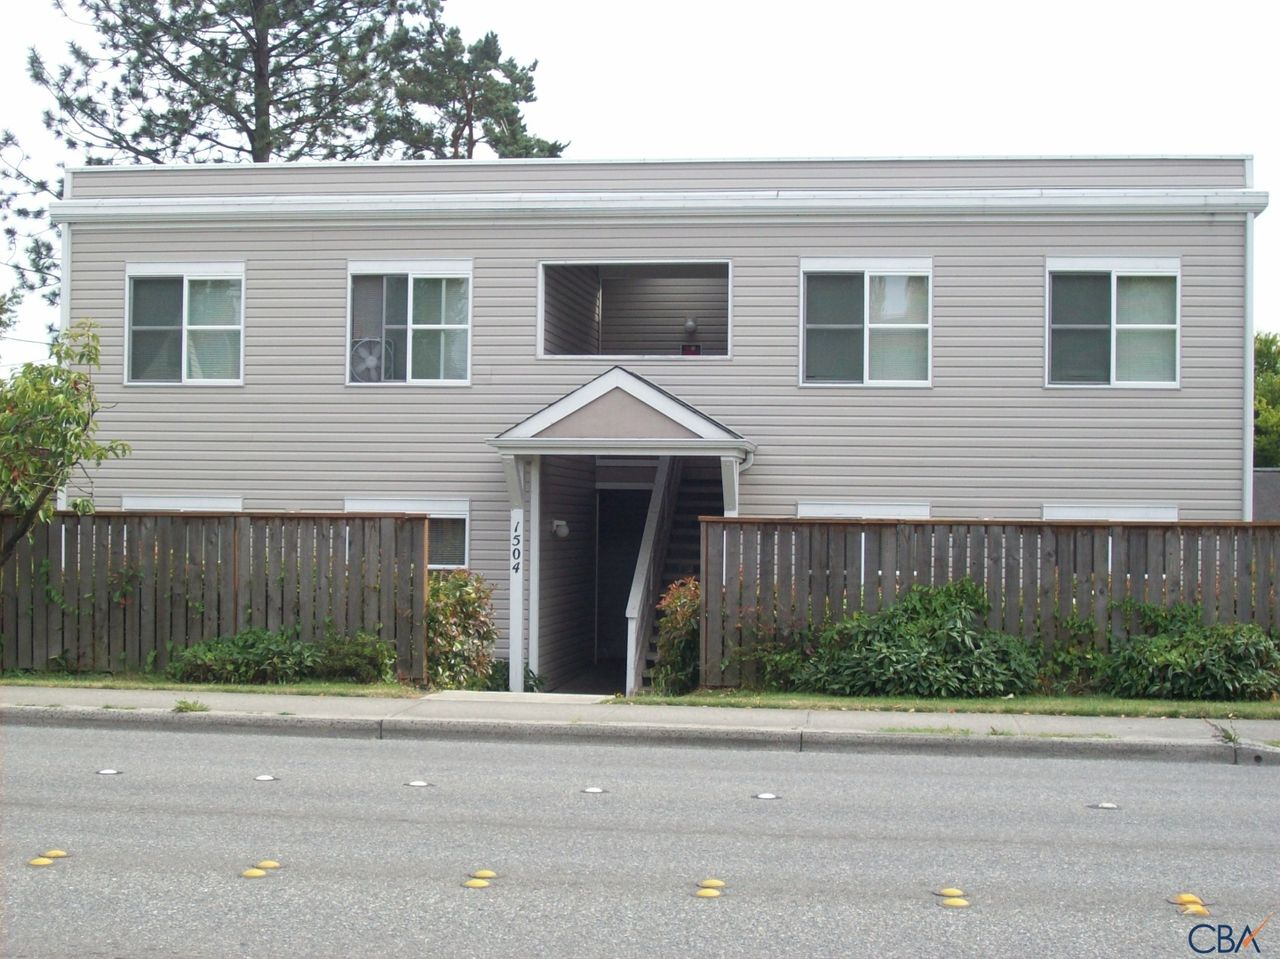 Primary Listing Image for MLS#: 644837